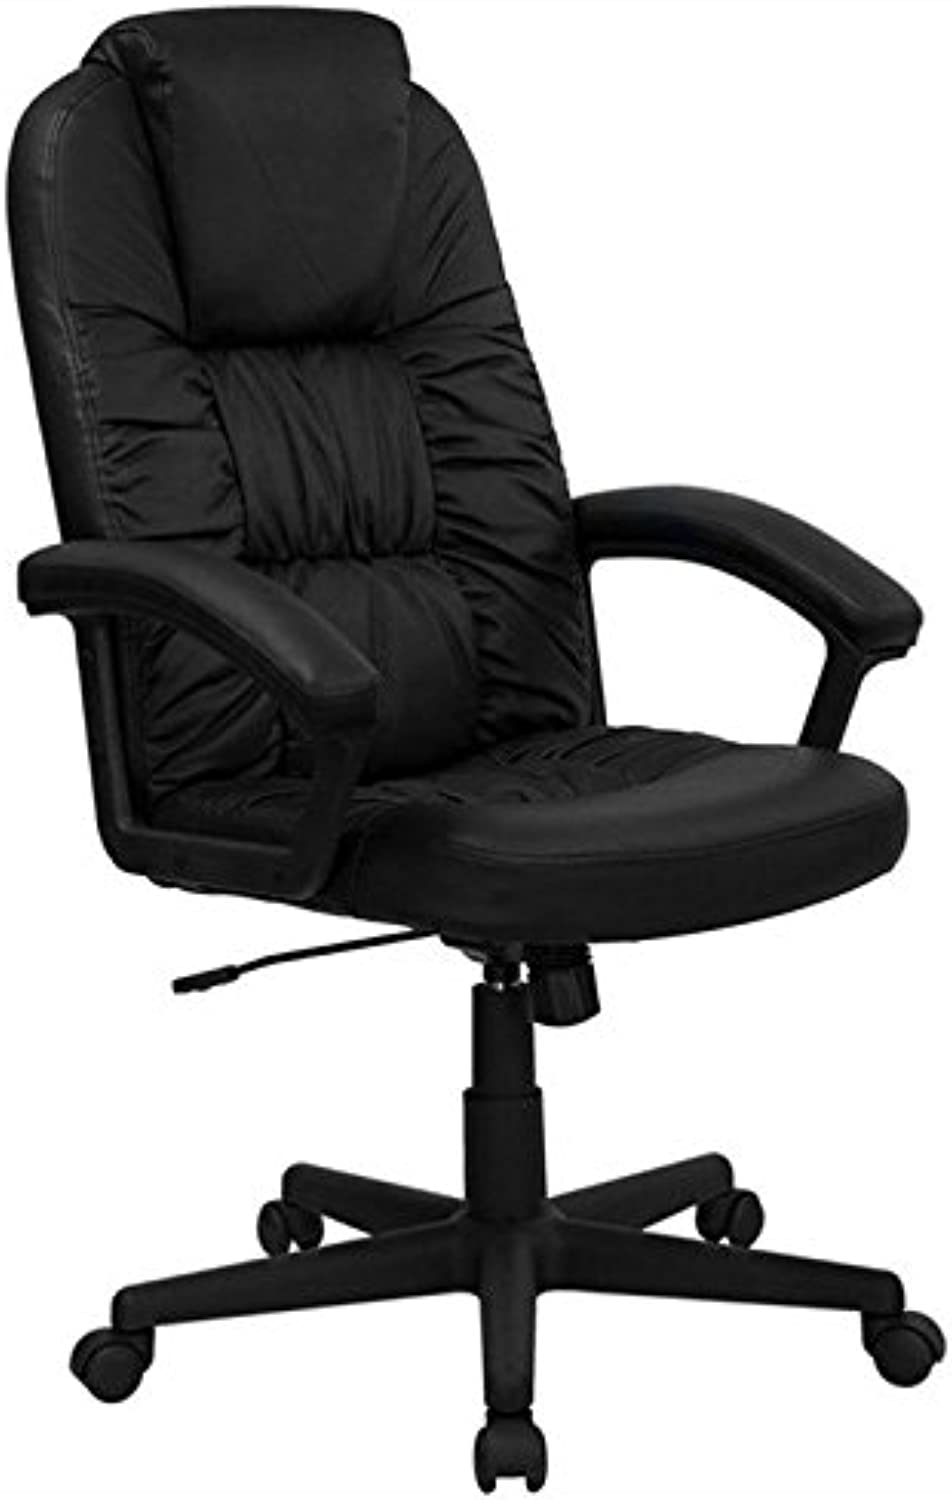 Scranton & Co High Back Swivel Office Chair in Black